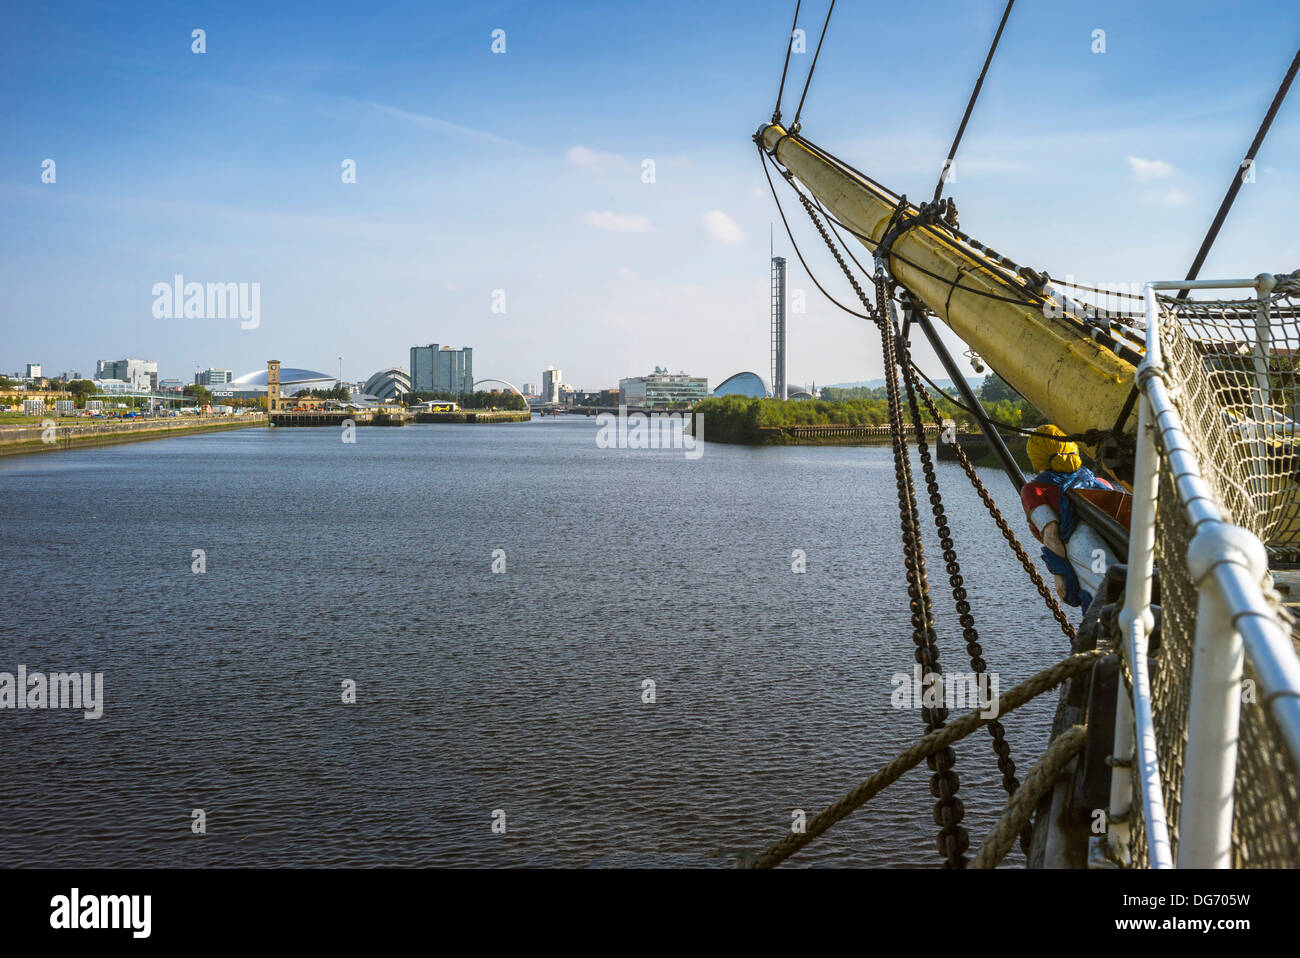 On board the Tall ship Glenlee a view looking along the bowsprit up the river Clyde towards the Glasgow city landmarks. - Stock Image